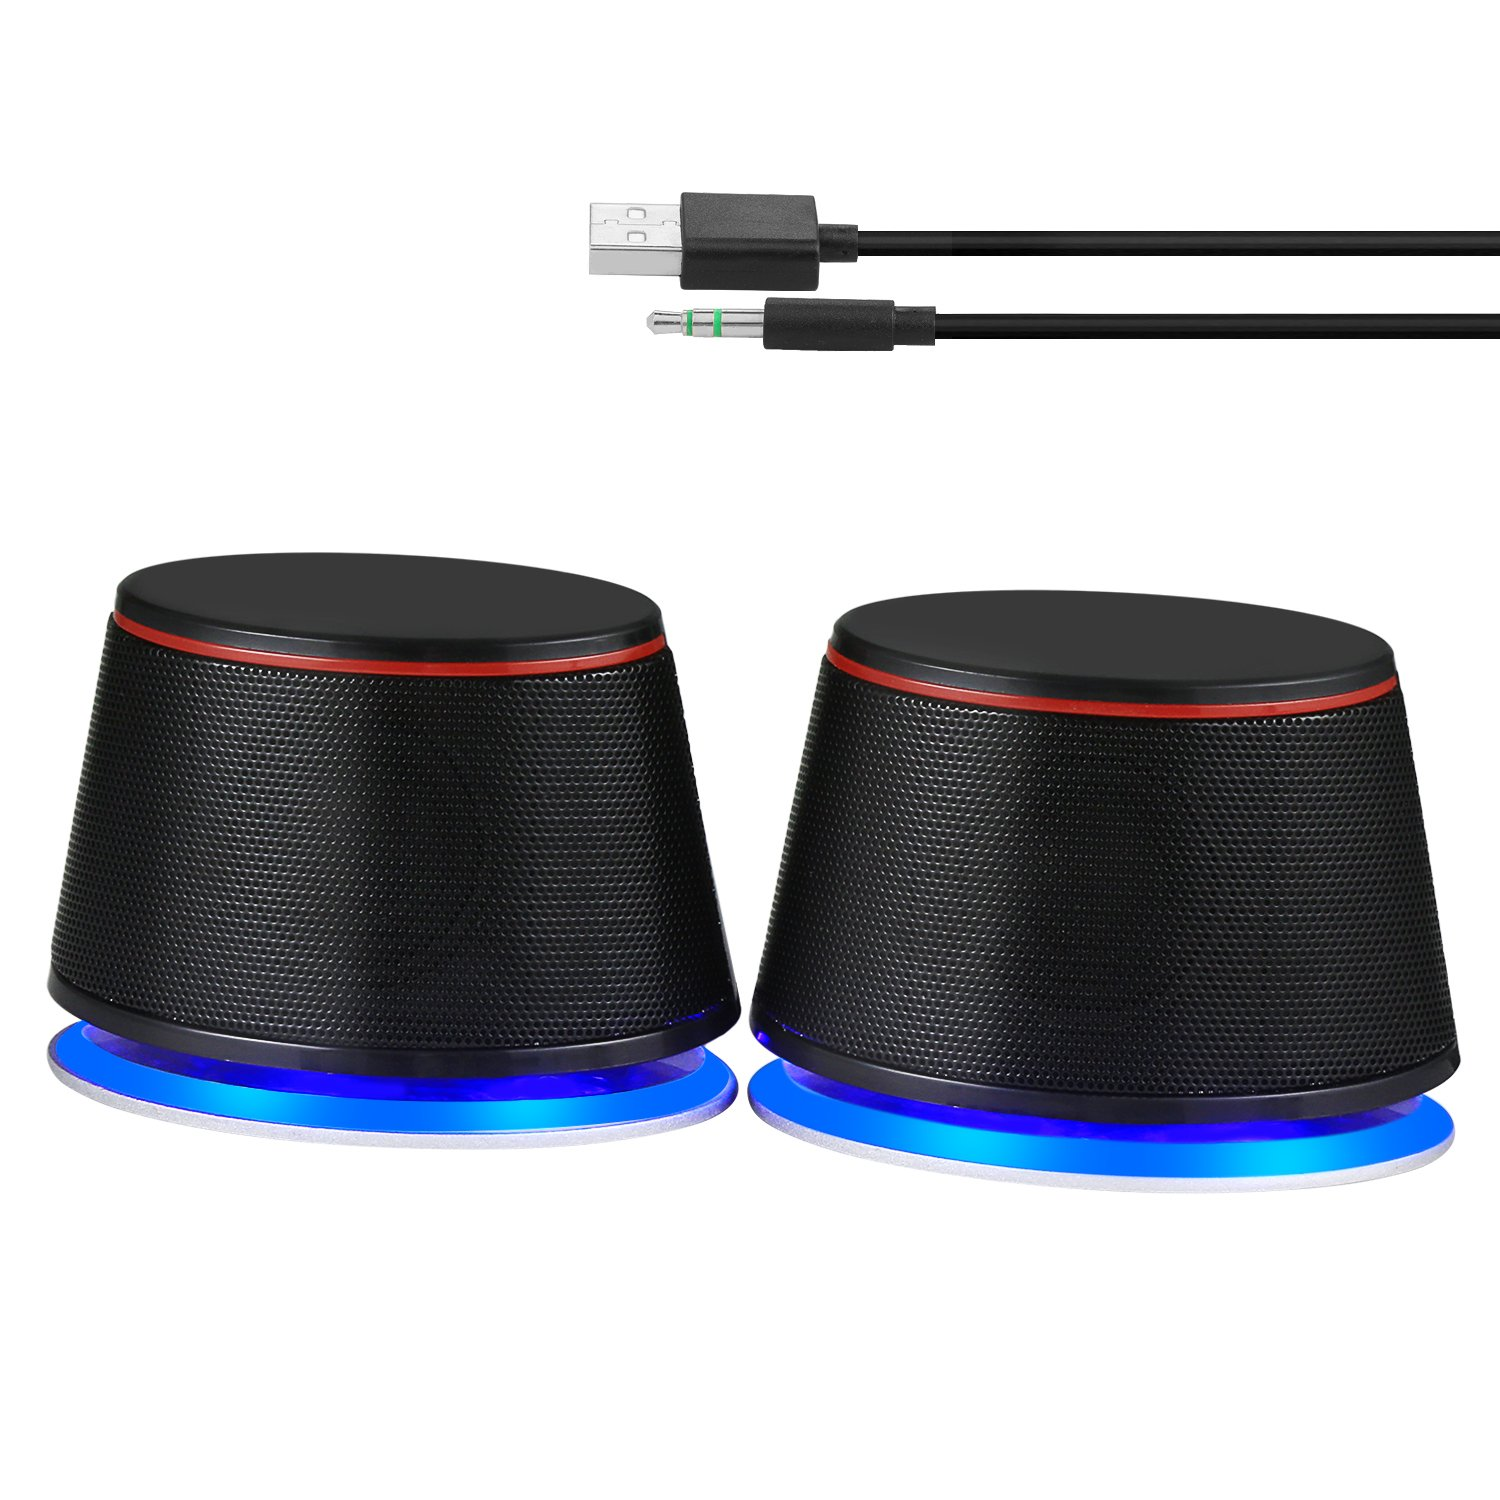 Sanyun SW102 Computer Speakers, Stereo 2.0 Channel Wired USB Powered PC Laptop Speakers, 3.5mm Aux Blue LED Small Desktop Speaker, Black by Sanyun (Image #2)